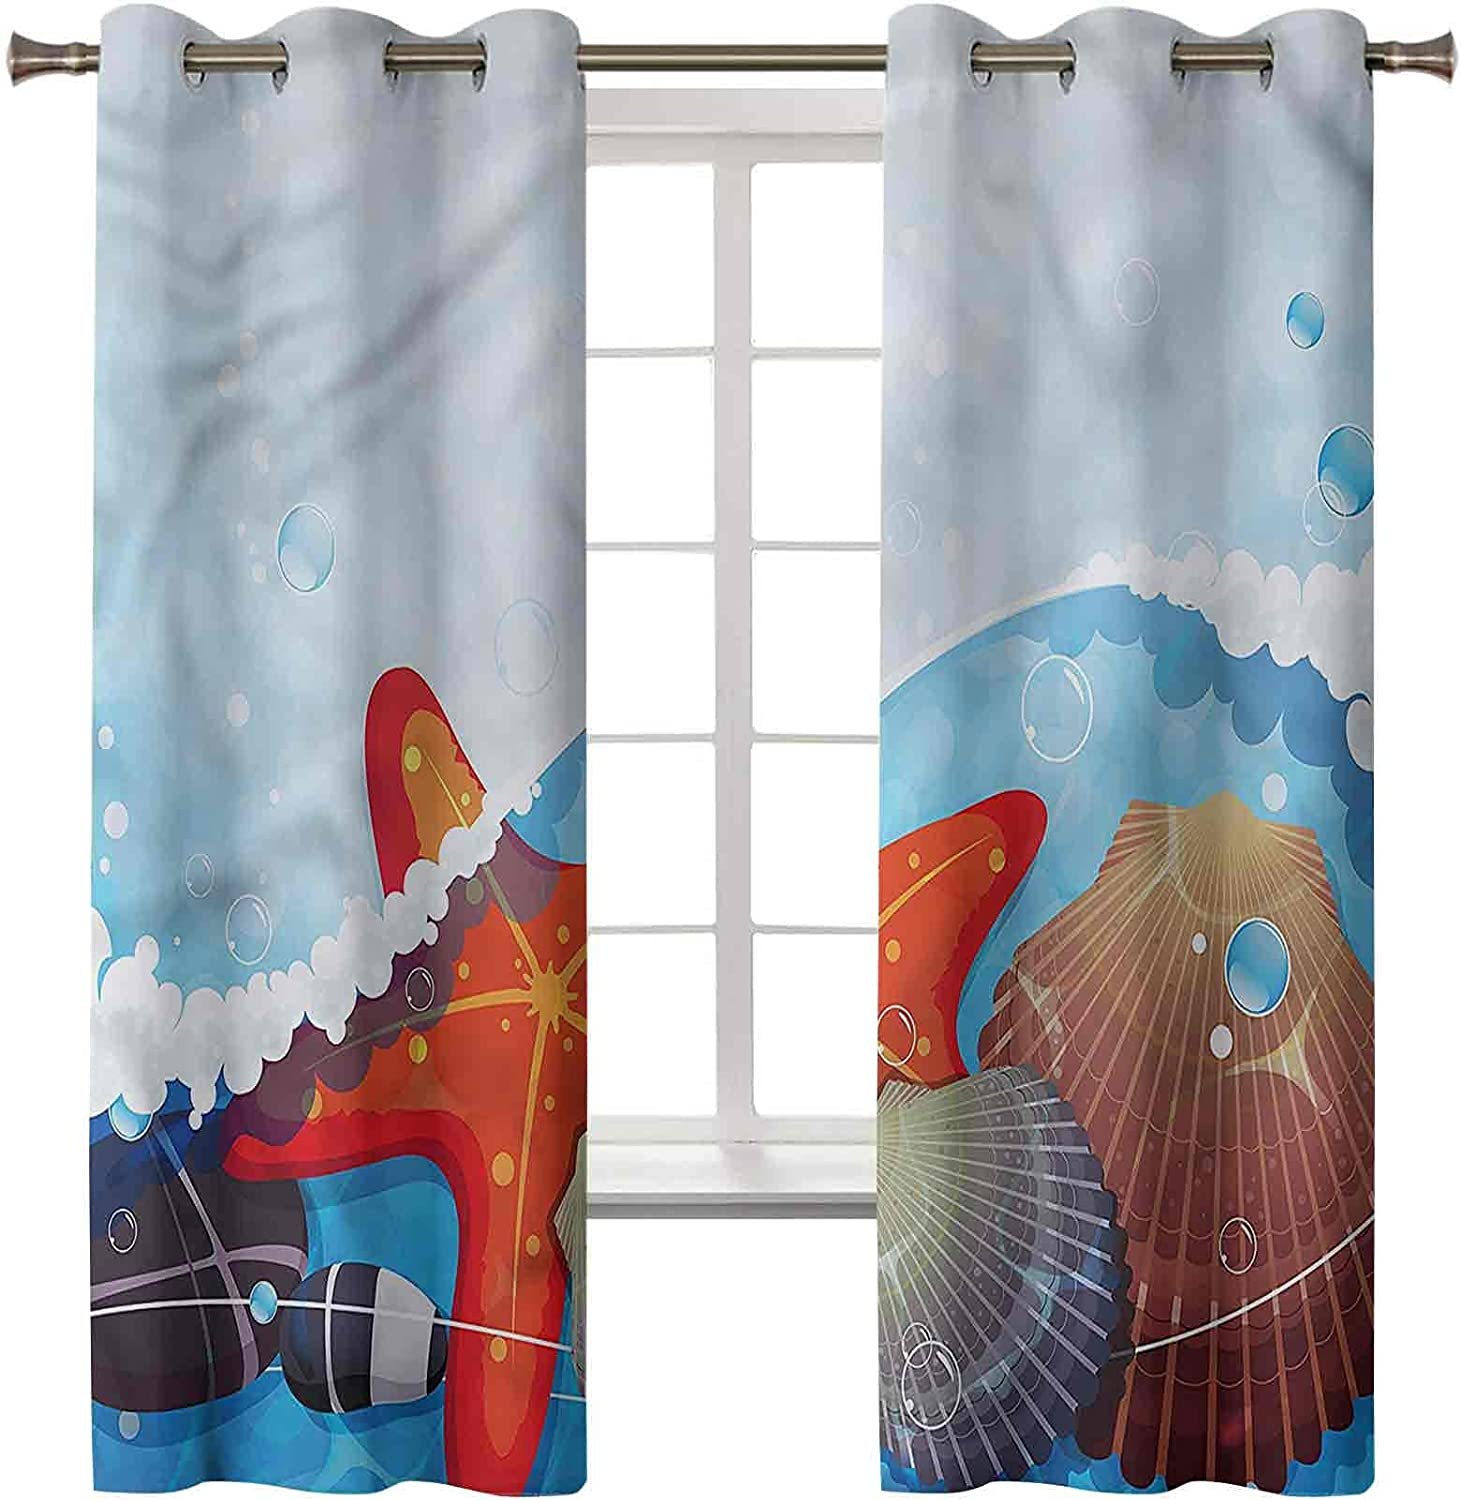 3D Printed Blackout OFFicial Curtains Thermal Max 74% OFF Insulated Noise Red Drapes